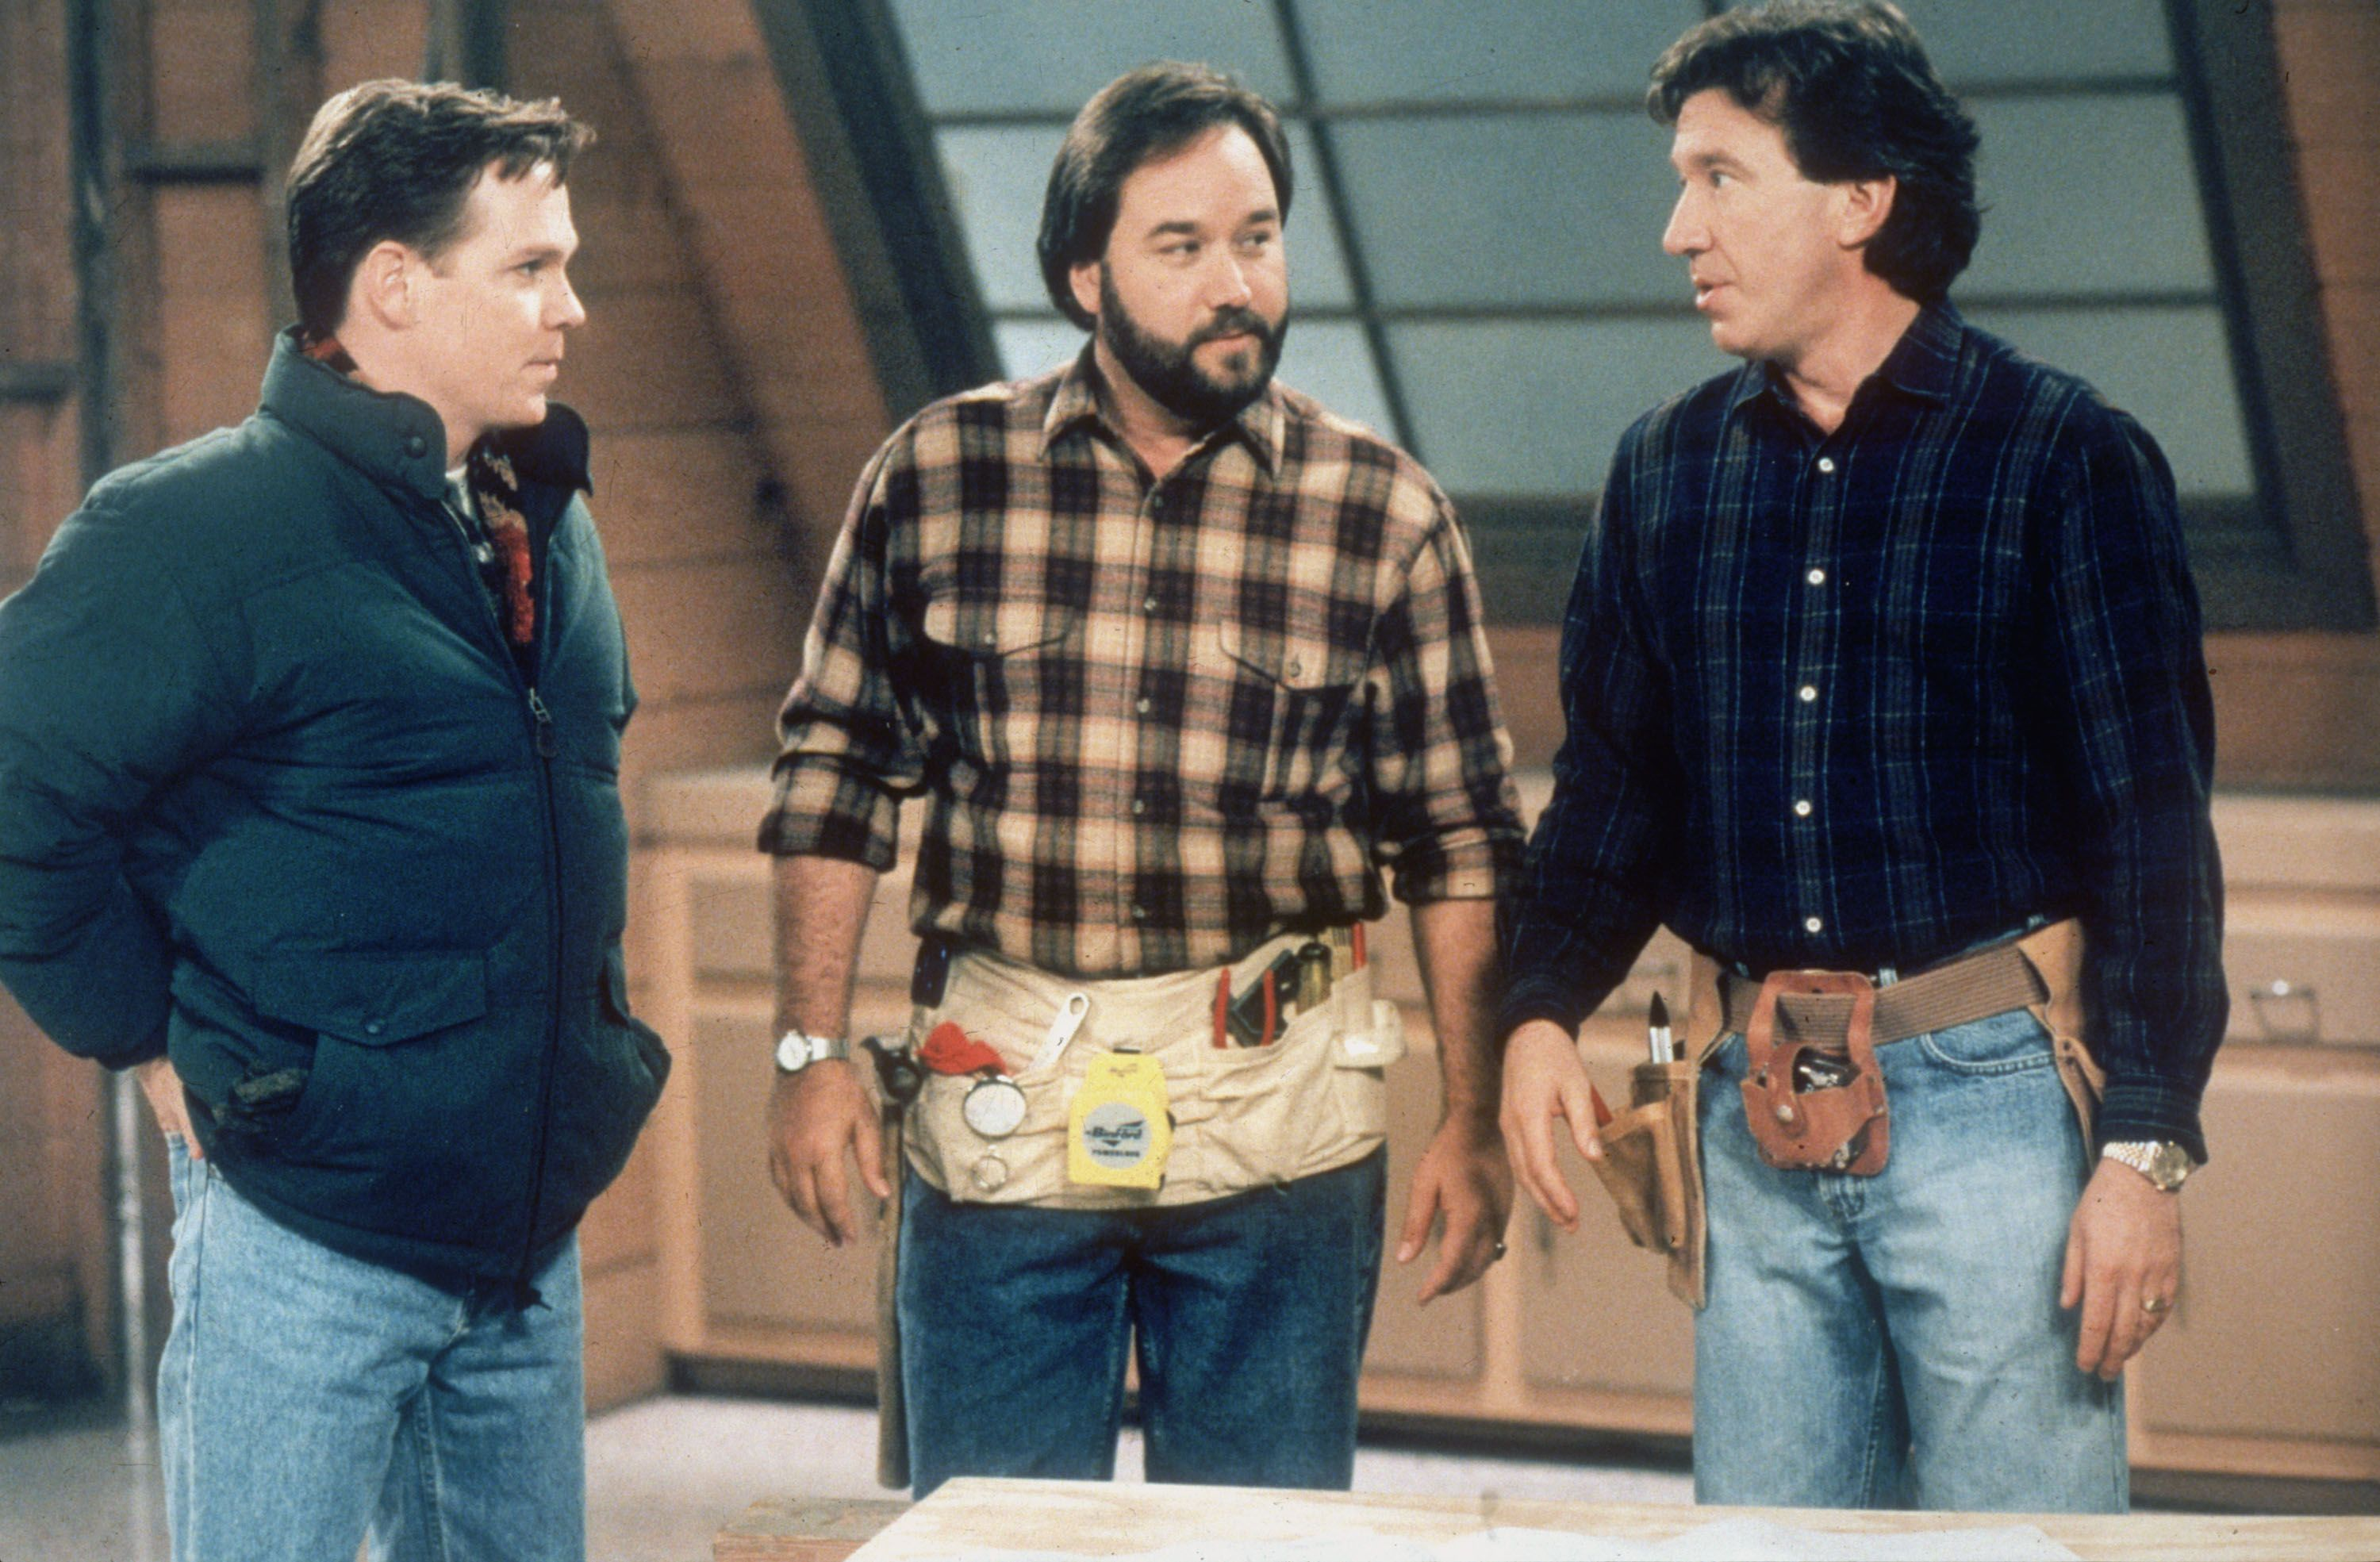 Home Improvement Tv Show Tim Allen Richard Karn And William O Leary As Tim S Brother Marty Home Improvement